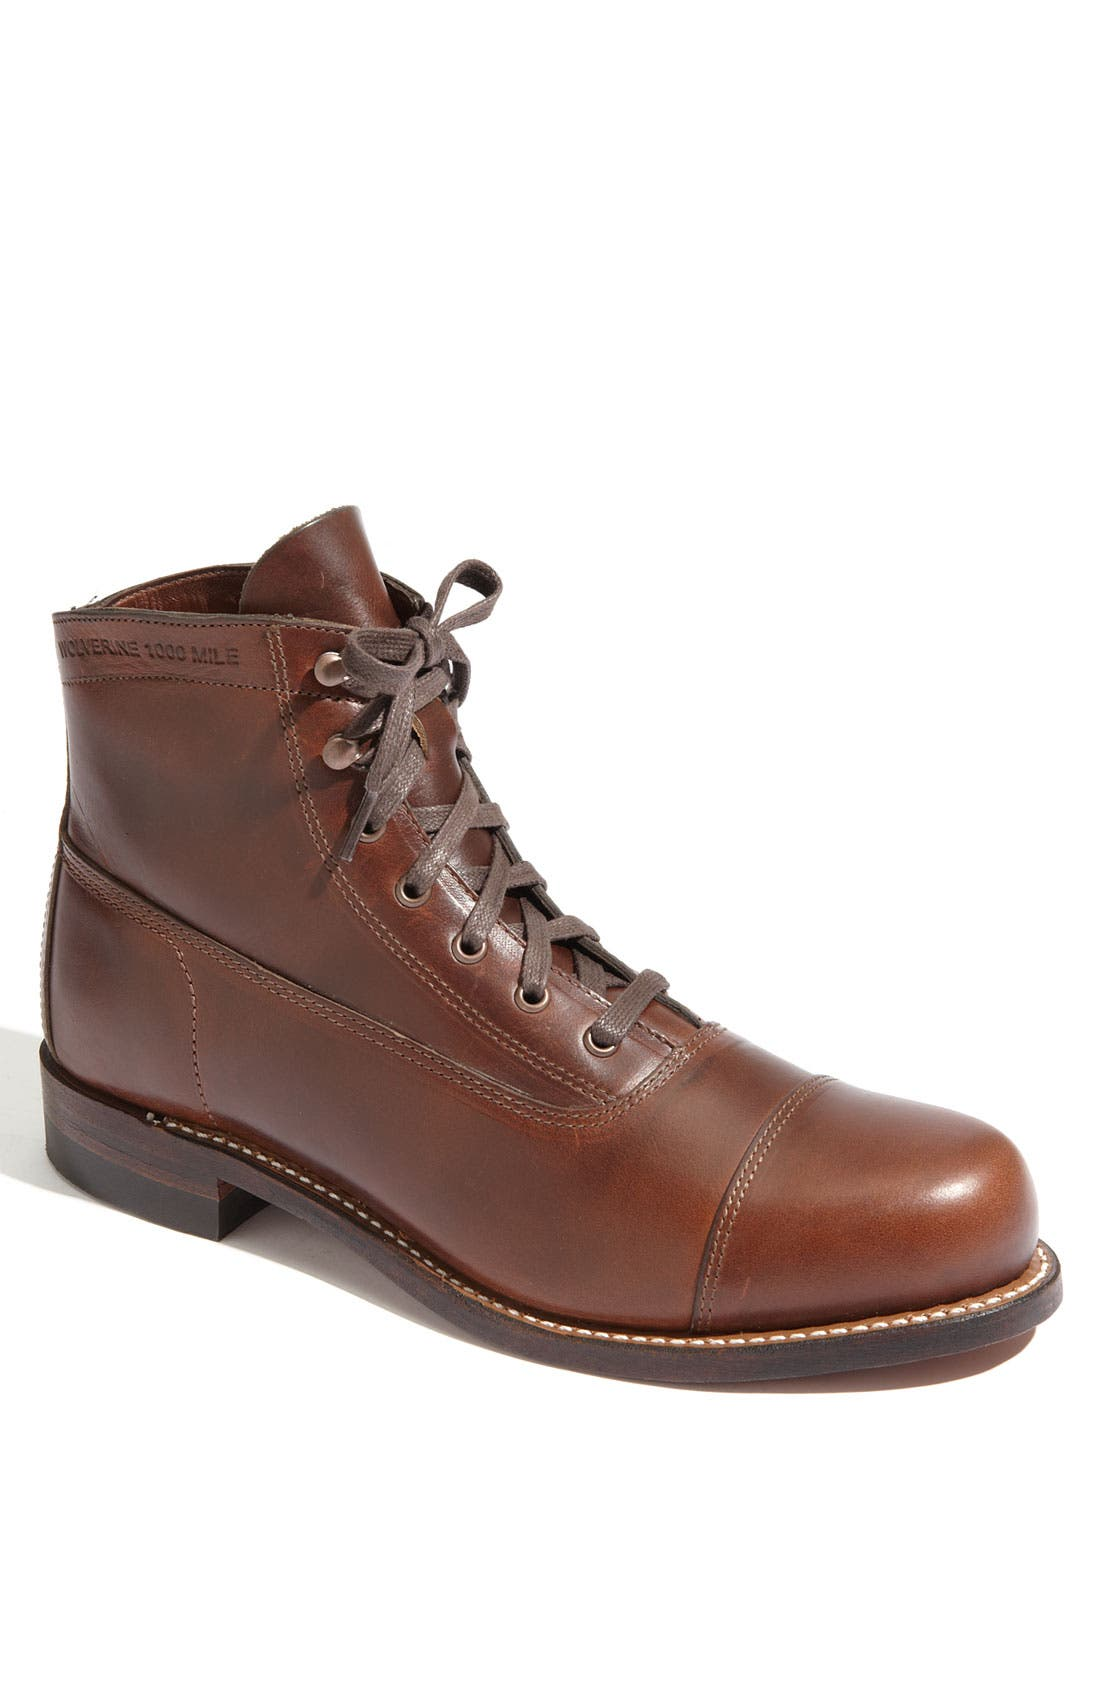 Alternate Image 1 Selected - Wolverine '1000 Mile - Rockford' Boot